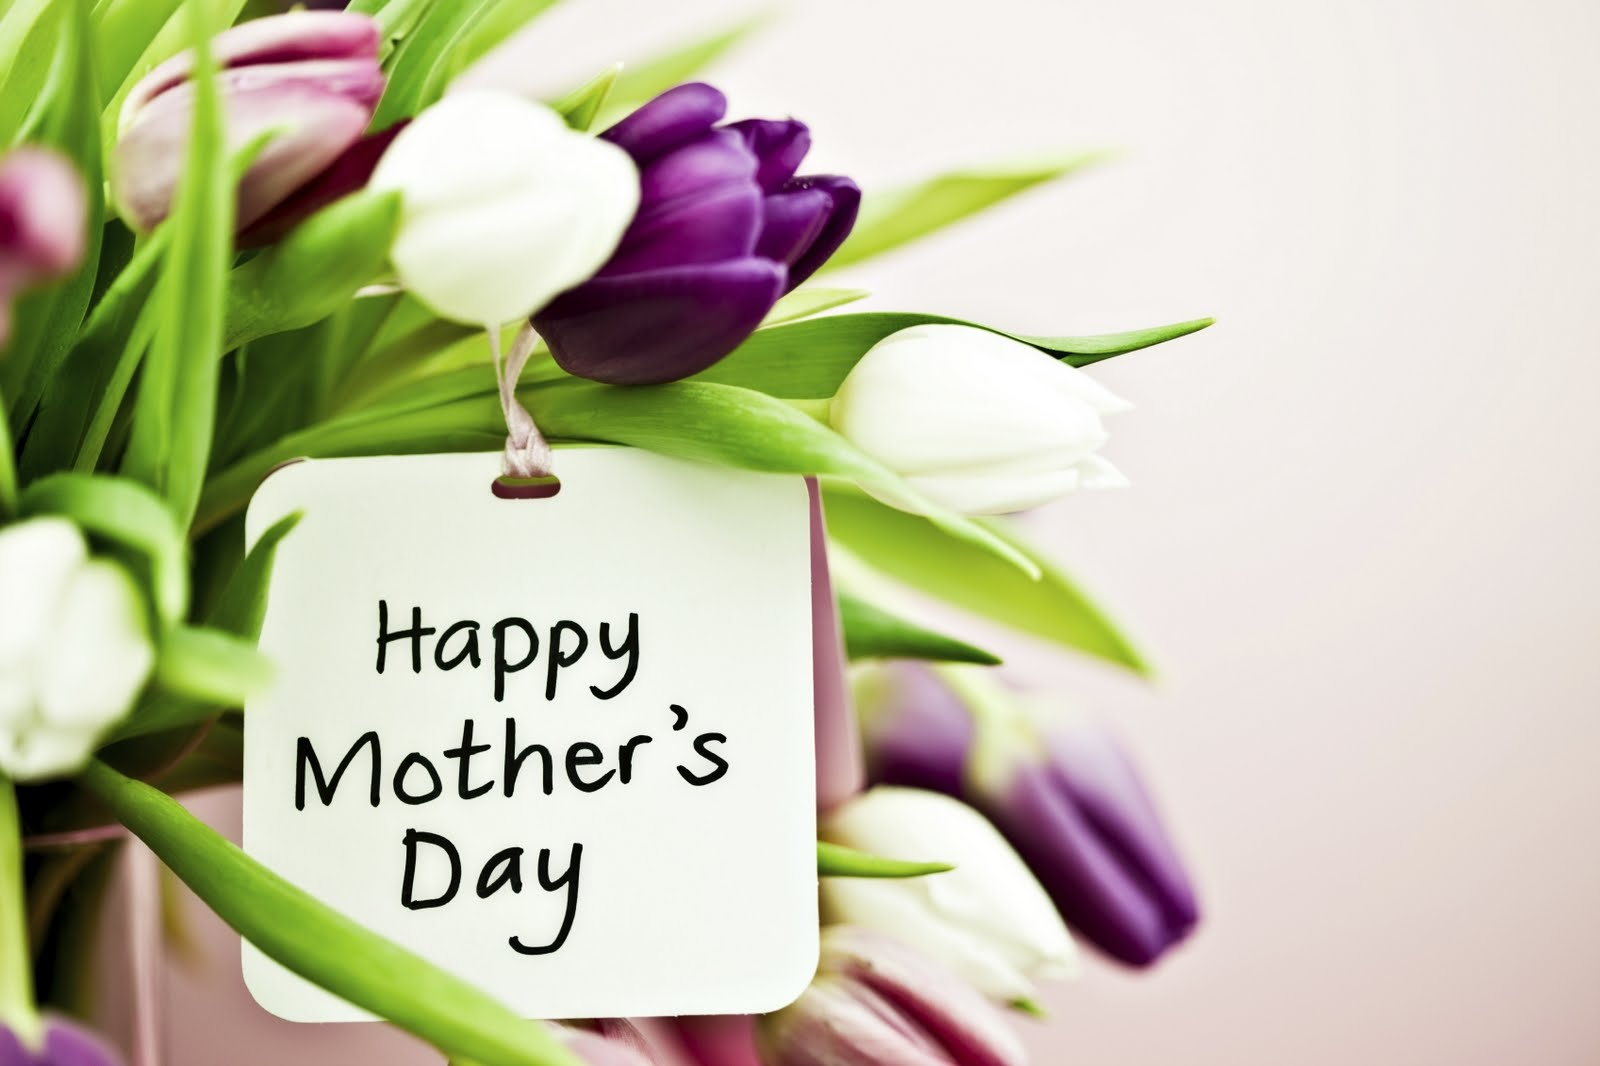 Send Mothers Day Bouquet For Praising The Efforts Of